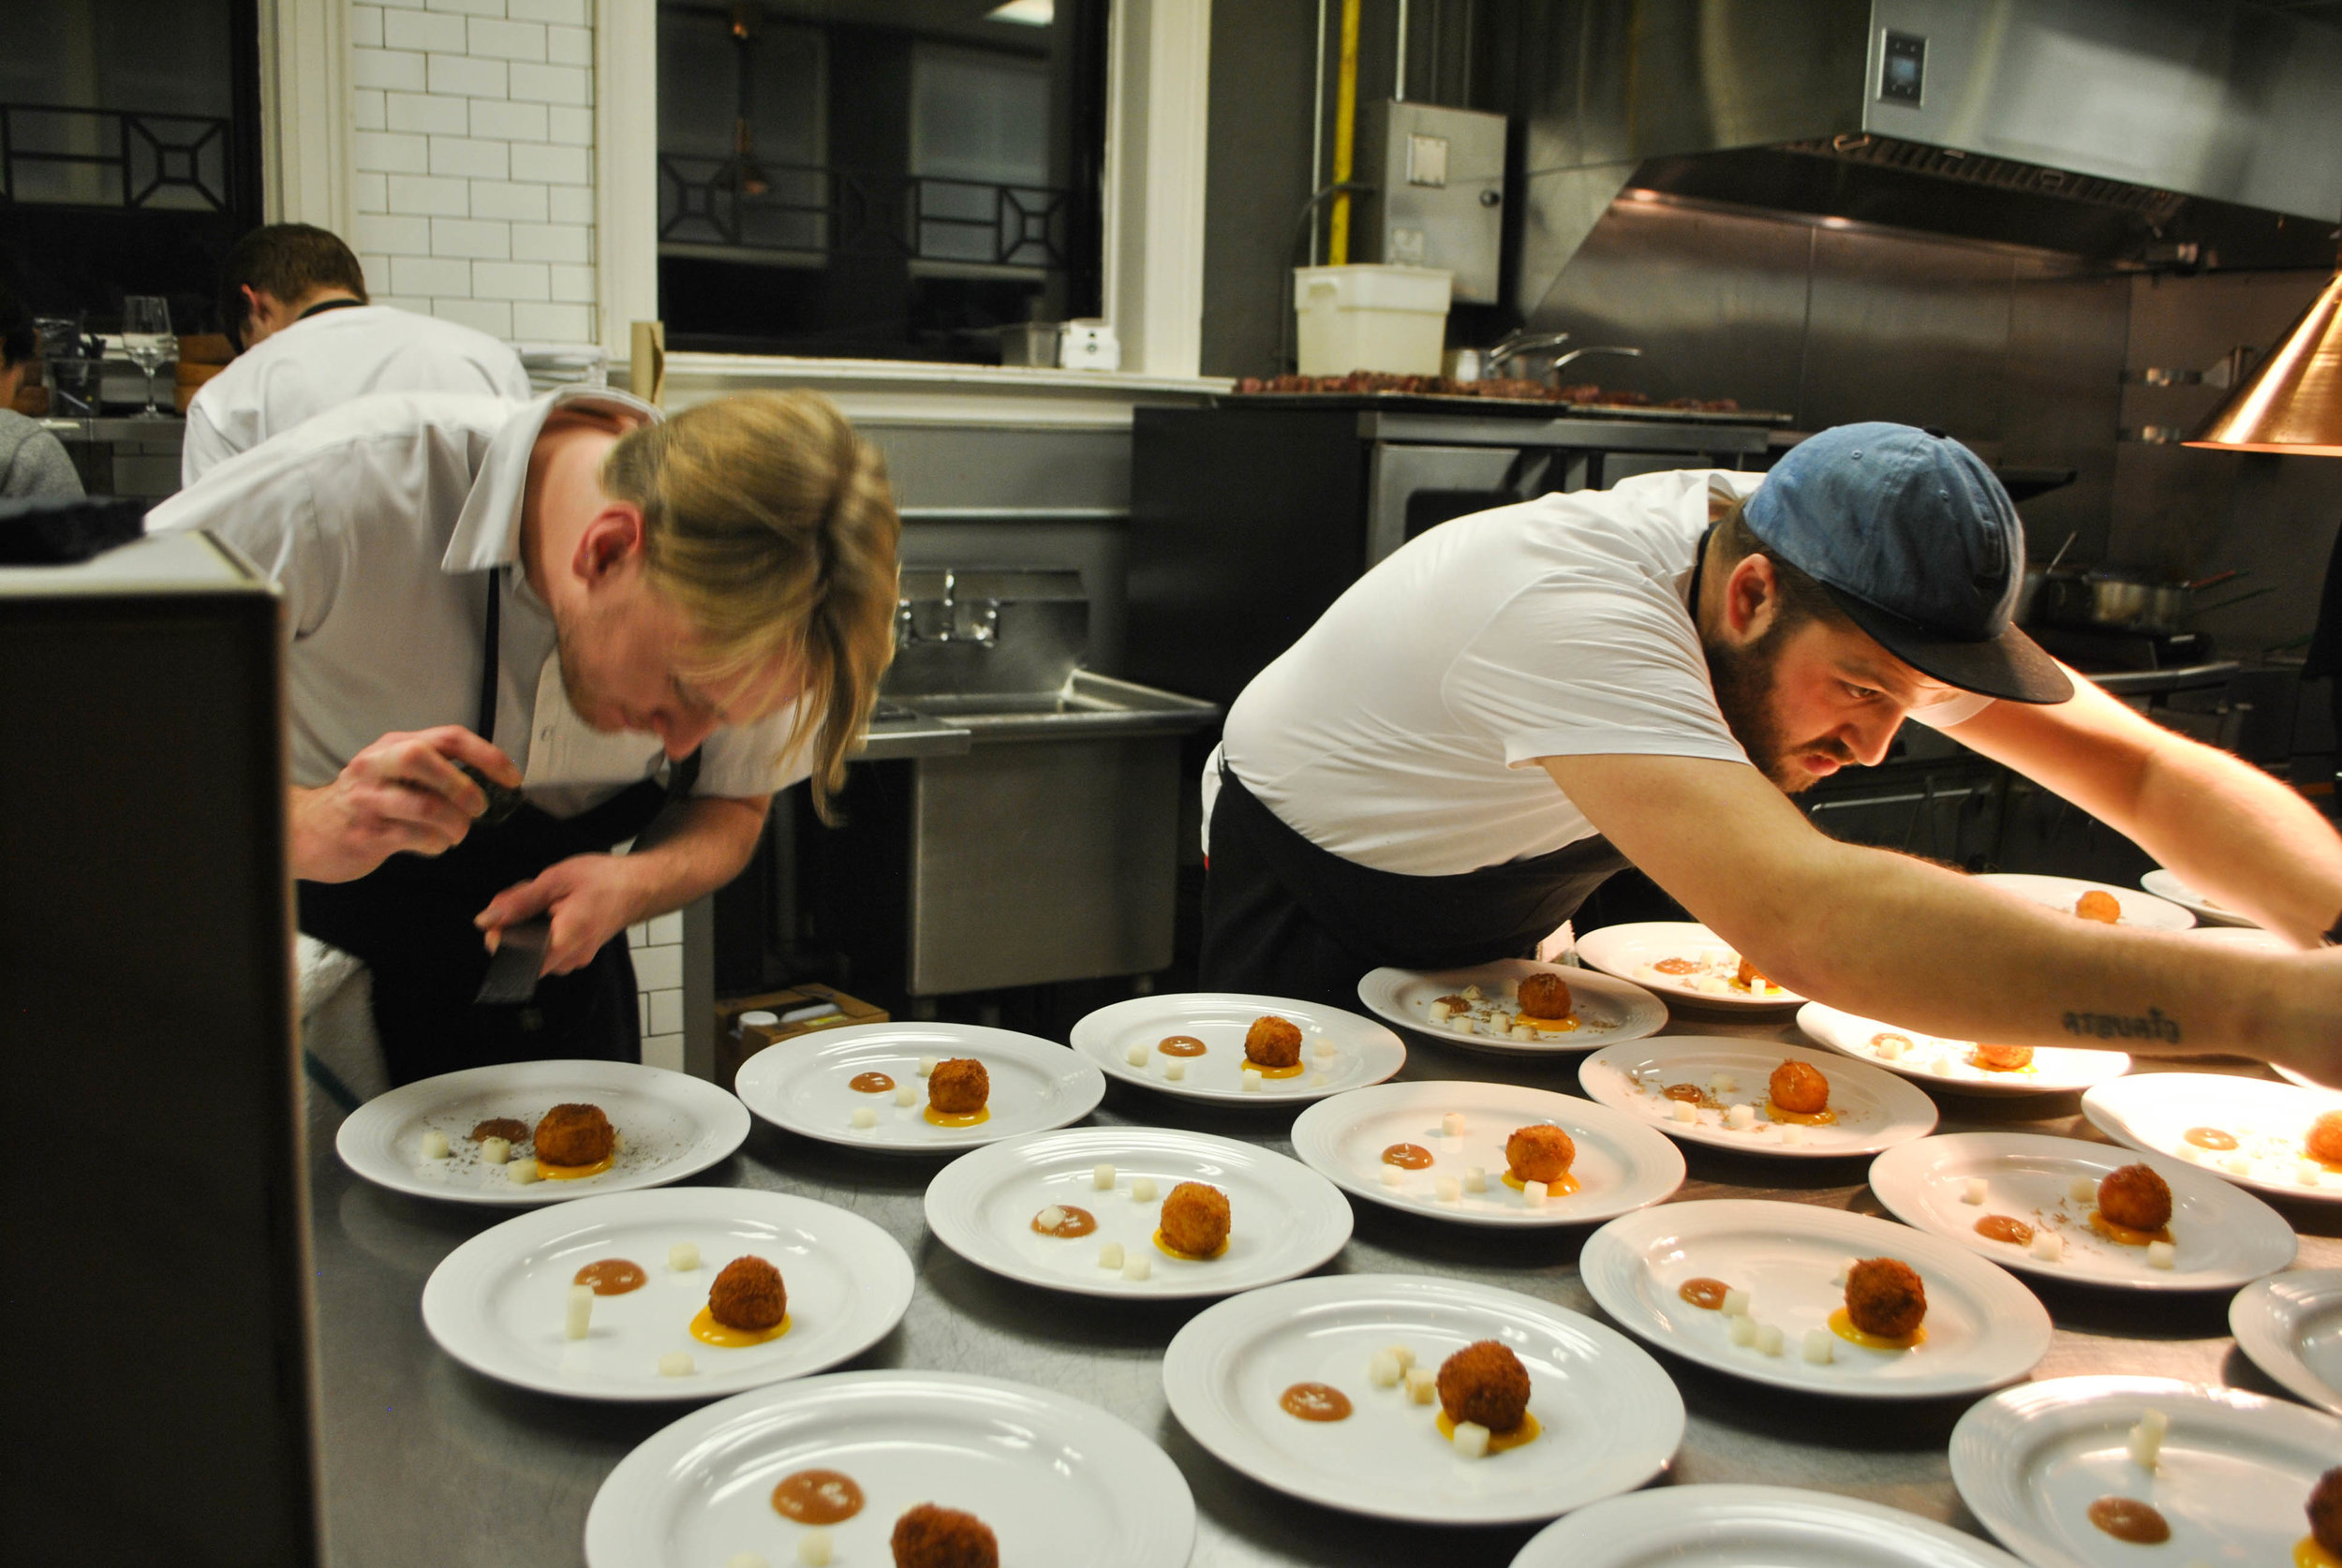 Jesse Zuber and Benet Hunt plating the 3rd course